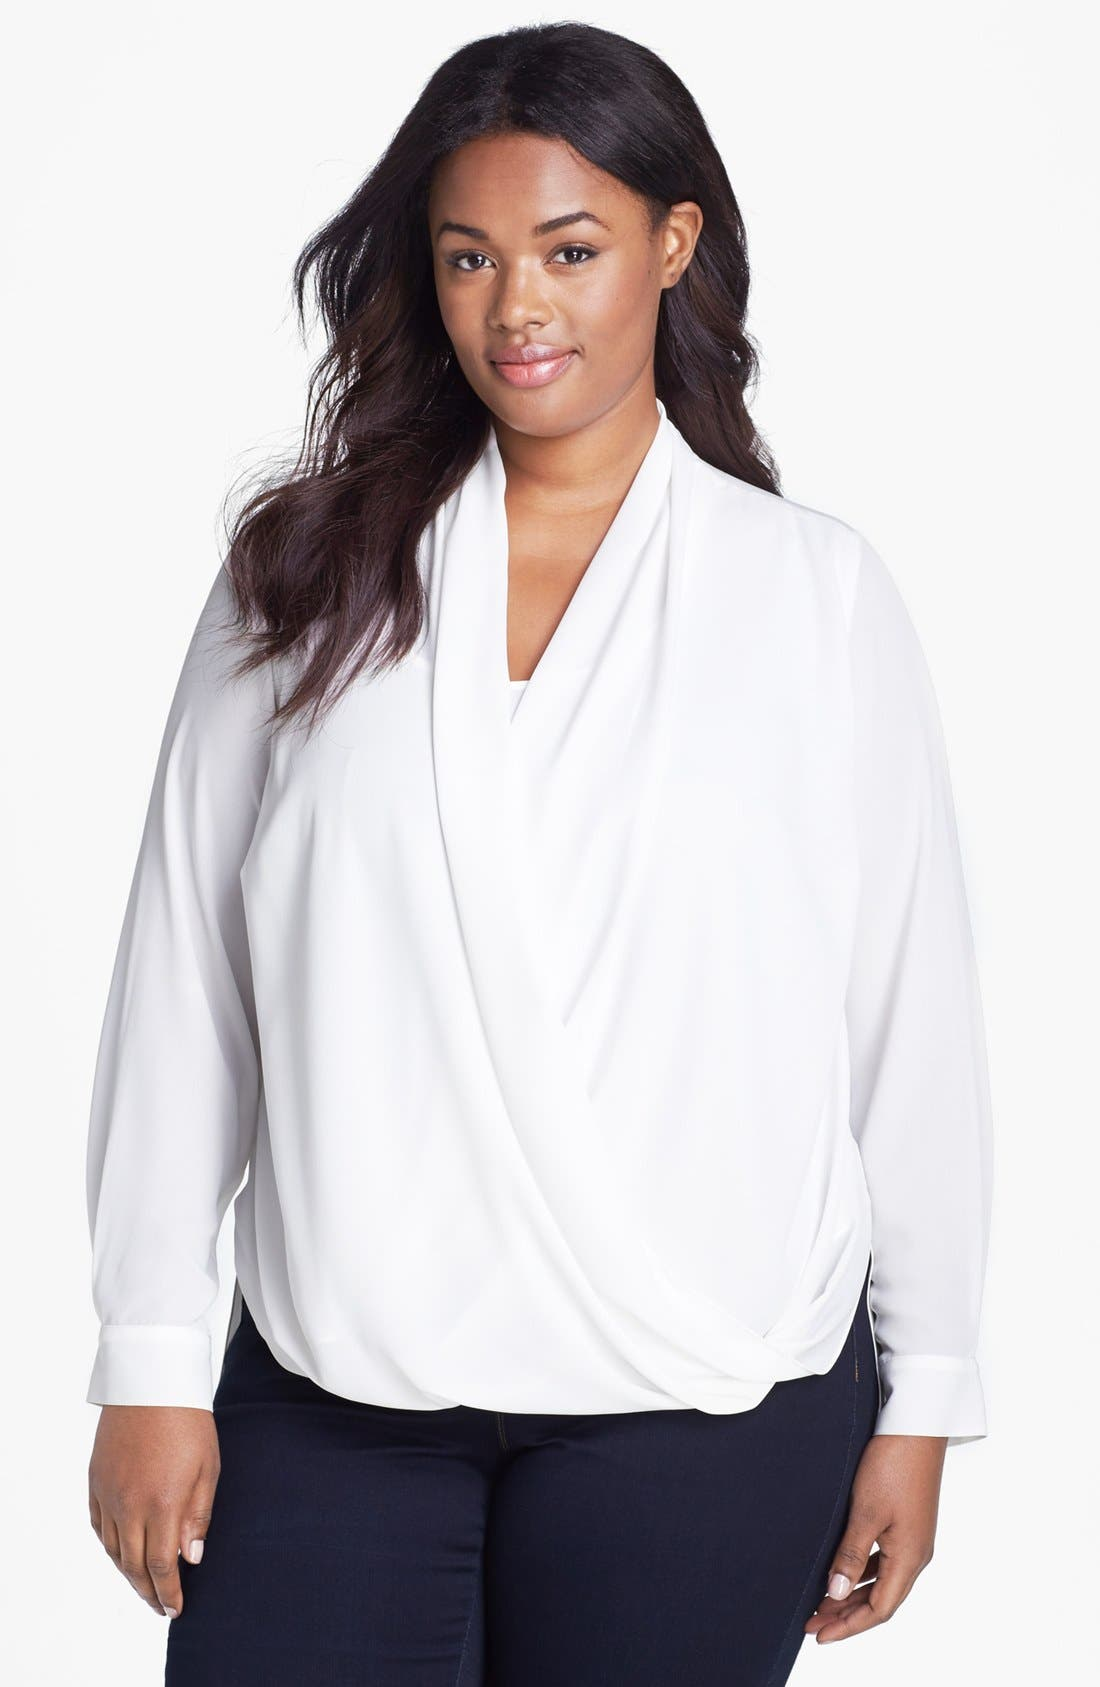 Alternate Image 1 Selected - Vince Camuto Drape Front Blouse (Plus Size)